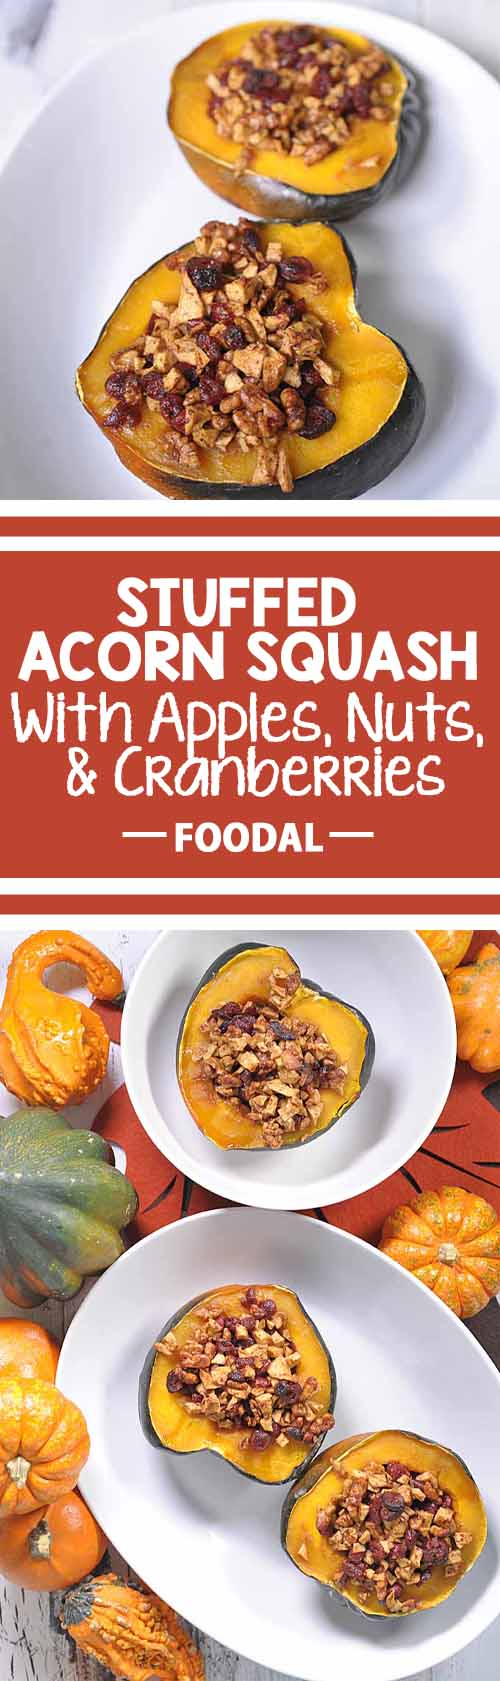 Nothing says Fall like acorn squash.. Add the traditional touch by stuffing it with cranberries, apples, and walnuts. Add a touch of cinnamon and you've got something that the whole family will love!